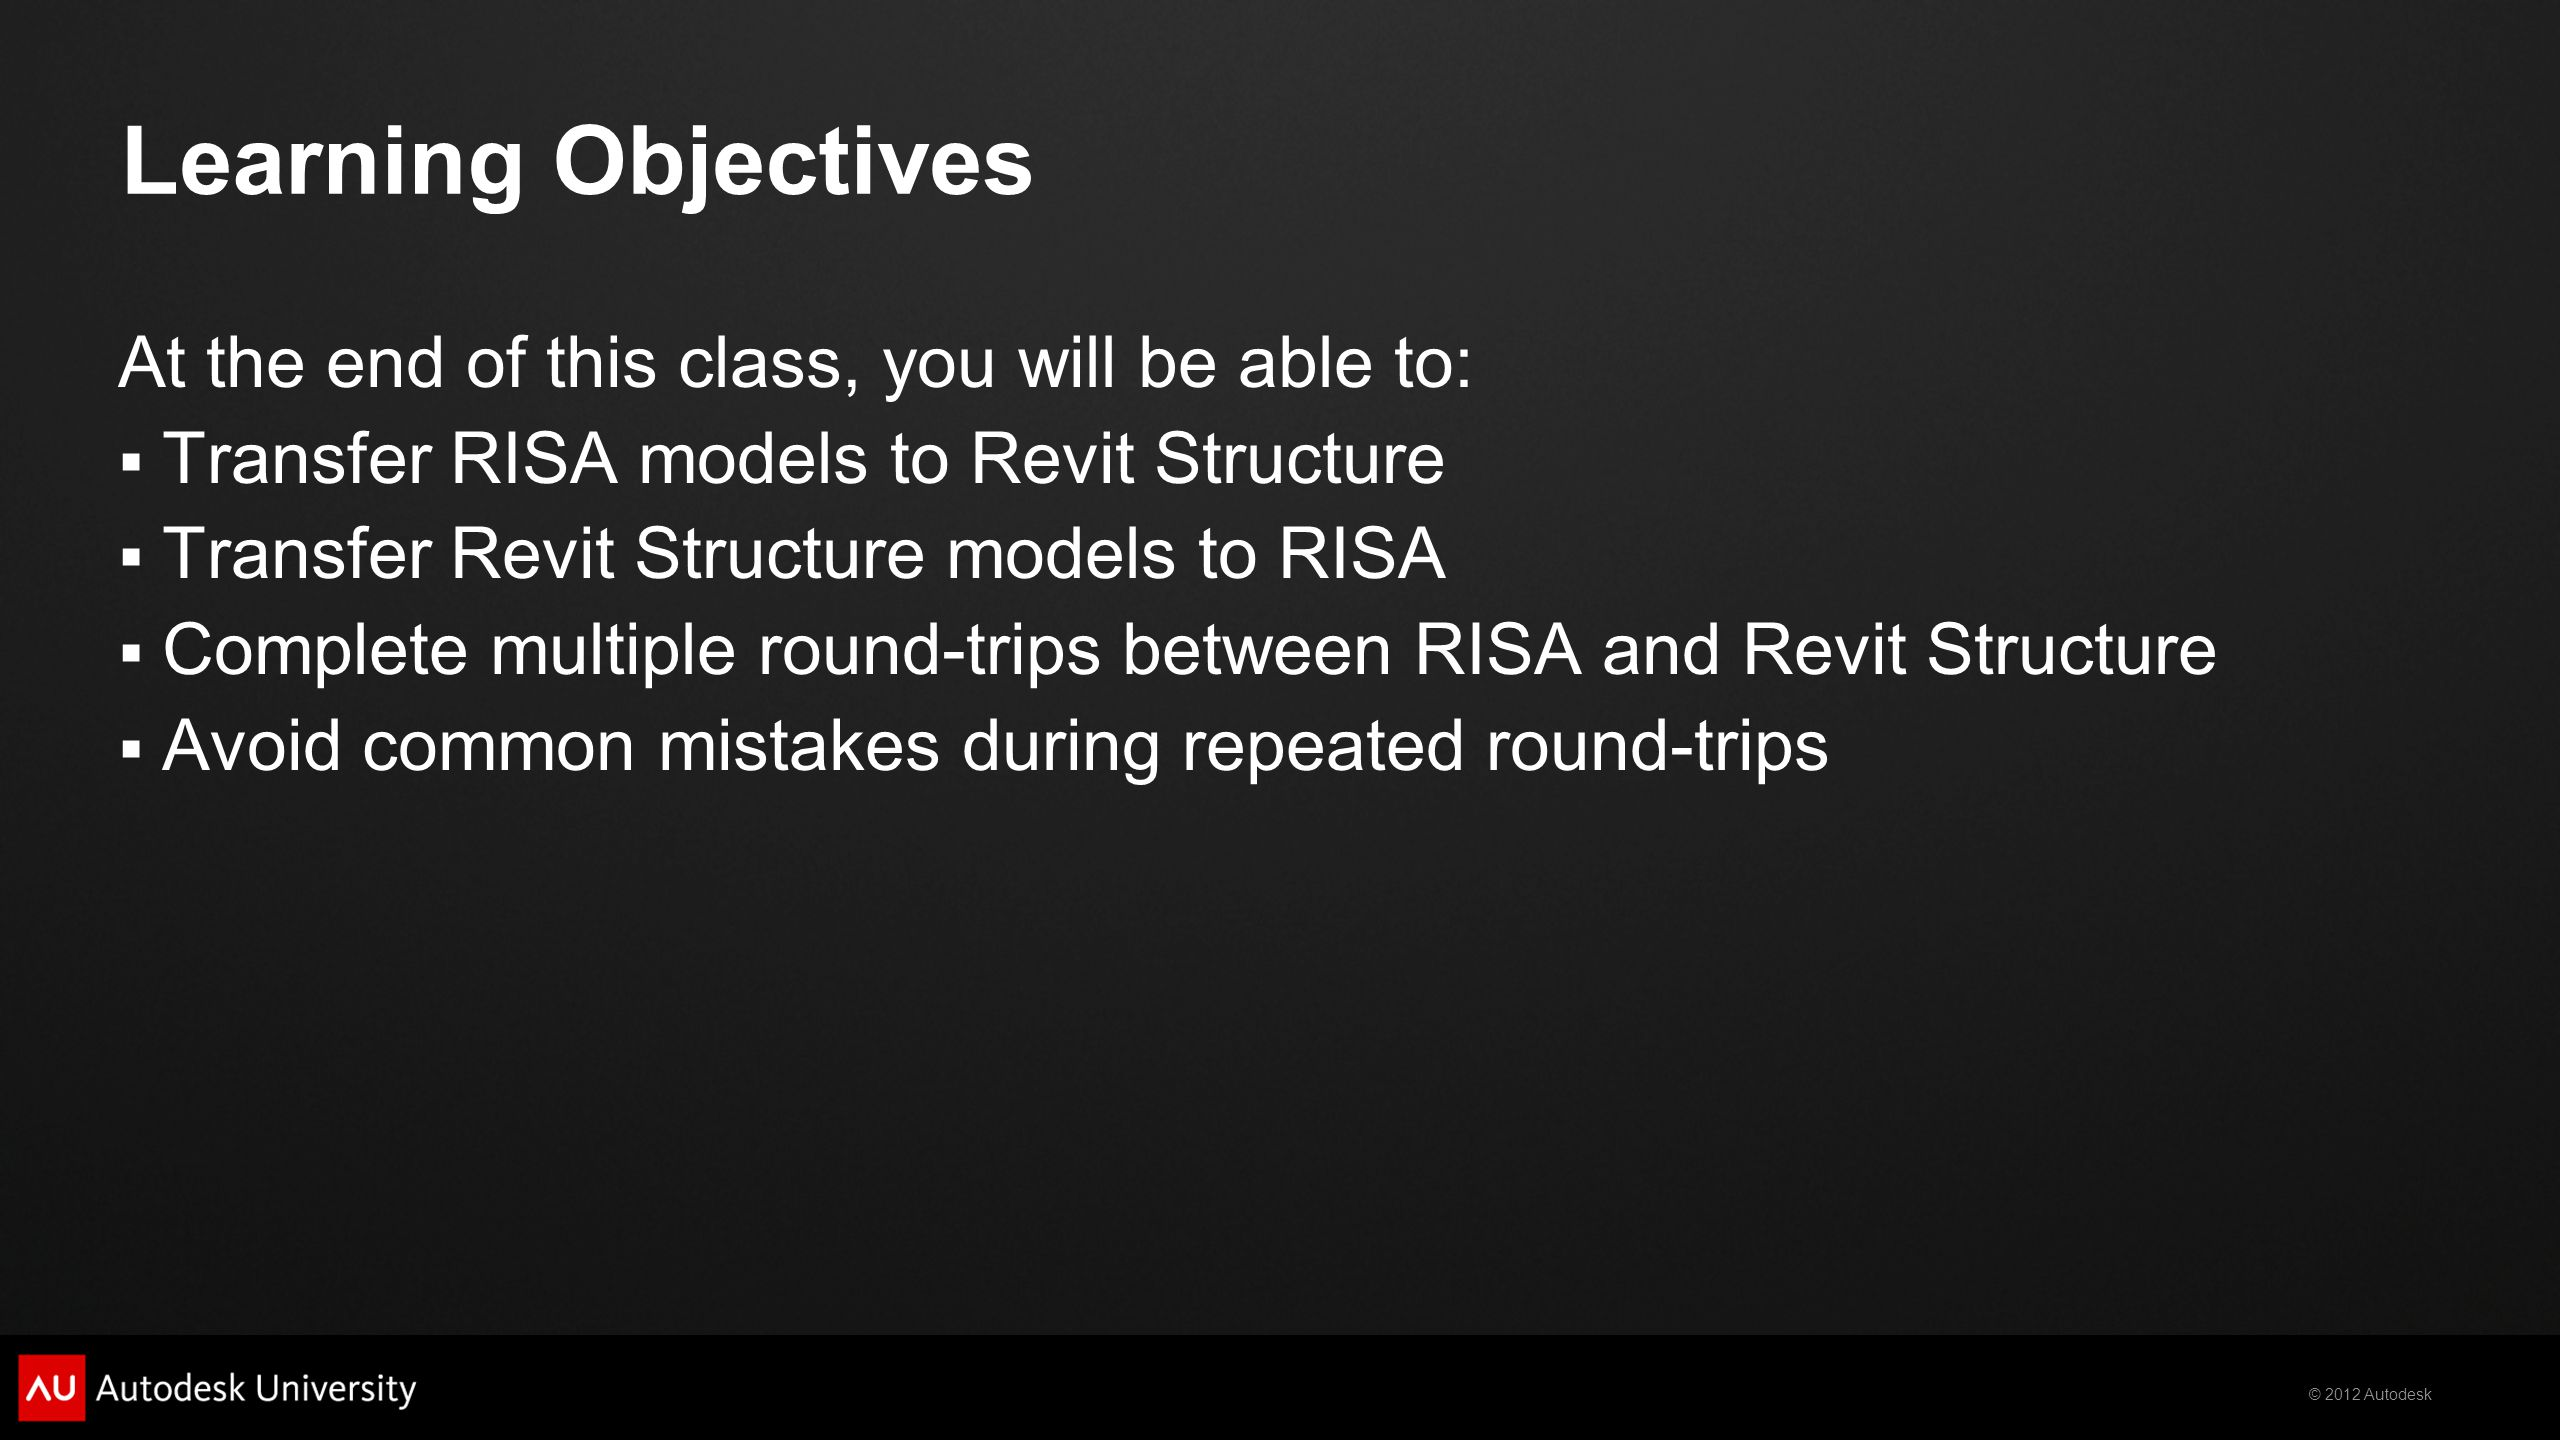 © 2012 Autodesk Learning Objectives At the end of this class, you will be able to:  Transfer RISA models to Revit Structure  Transfer Revit Structur